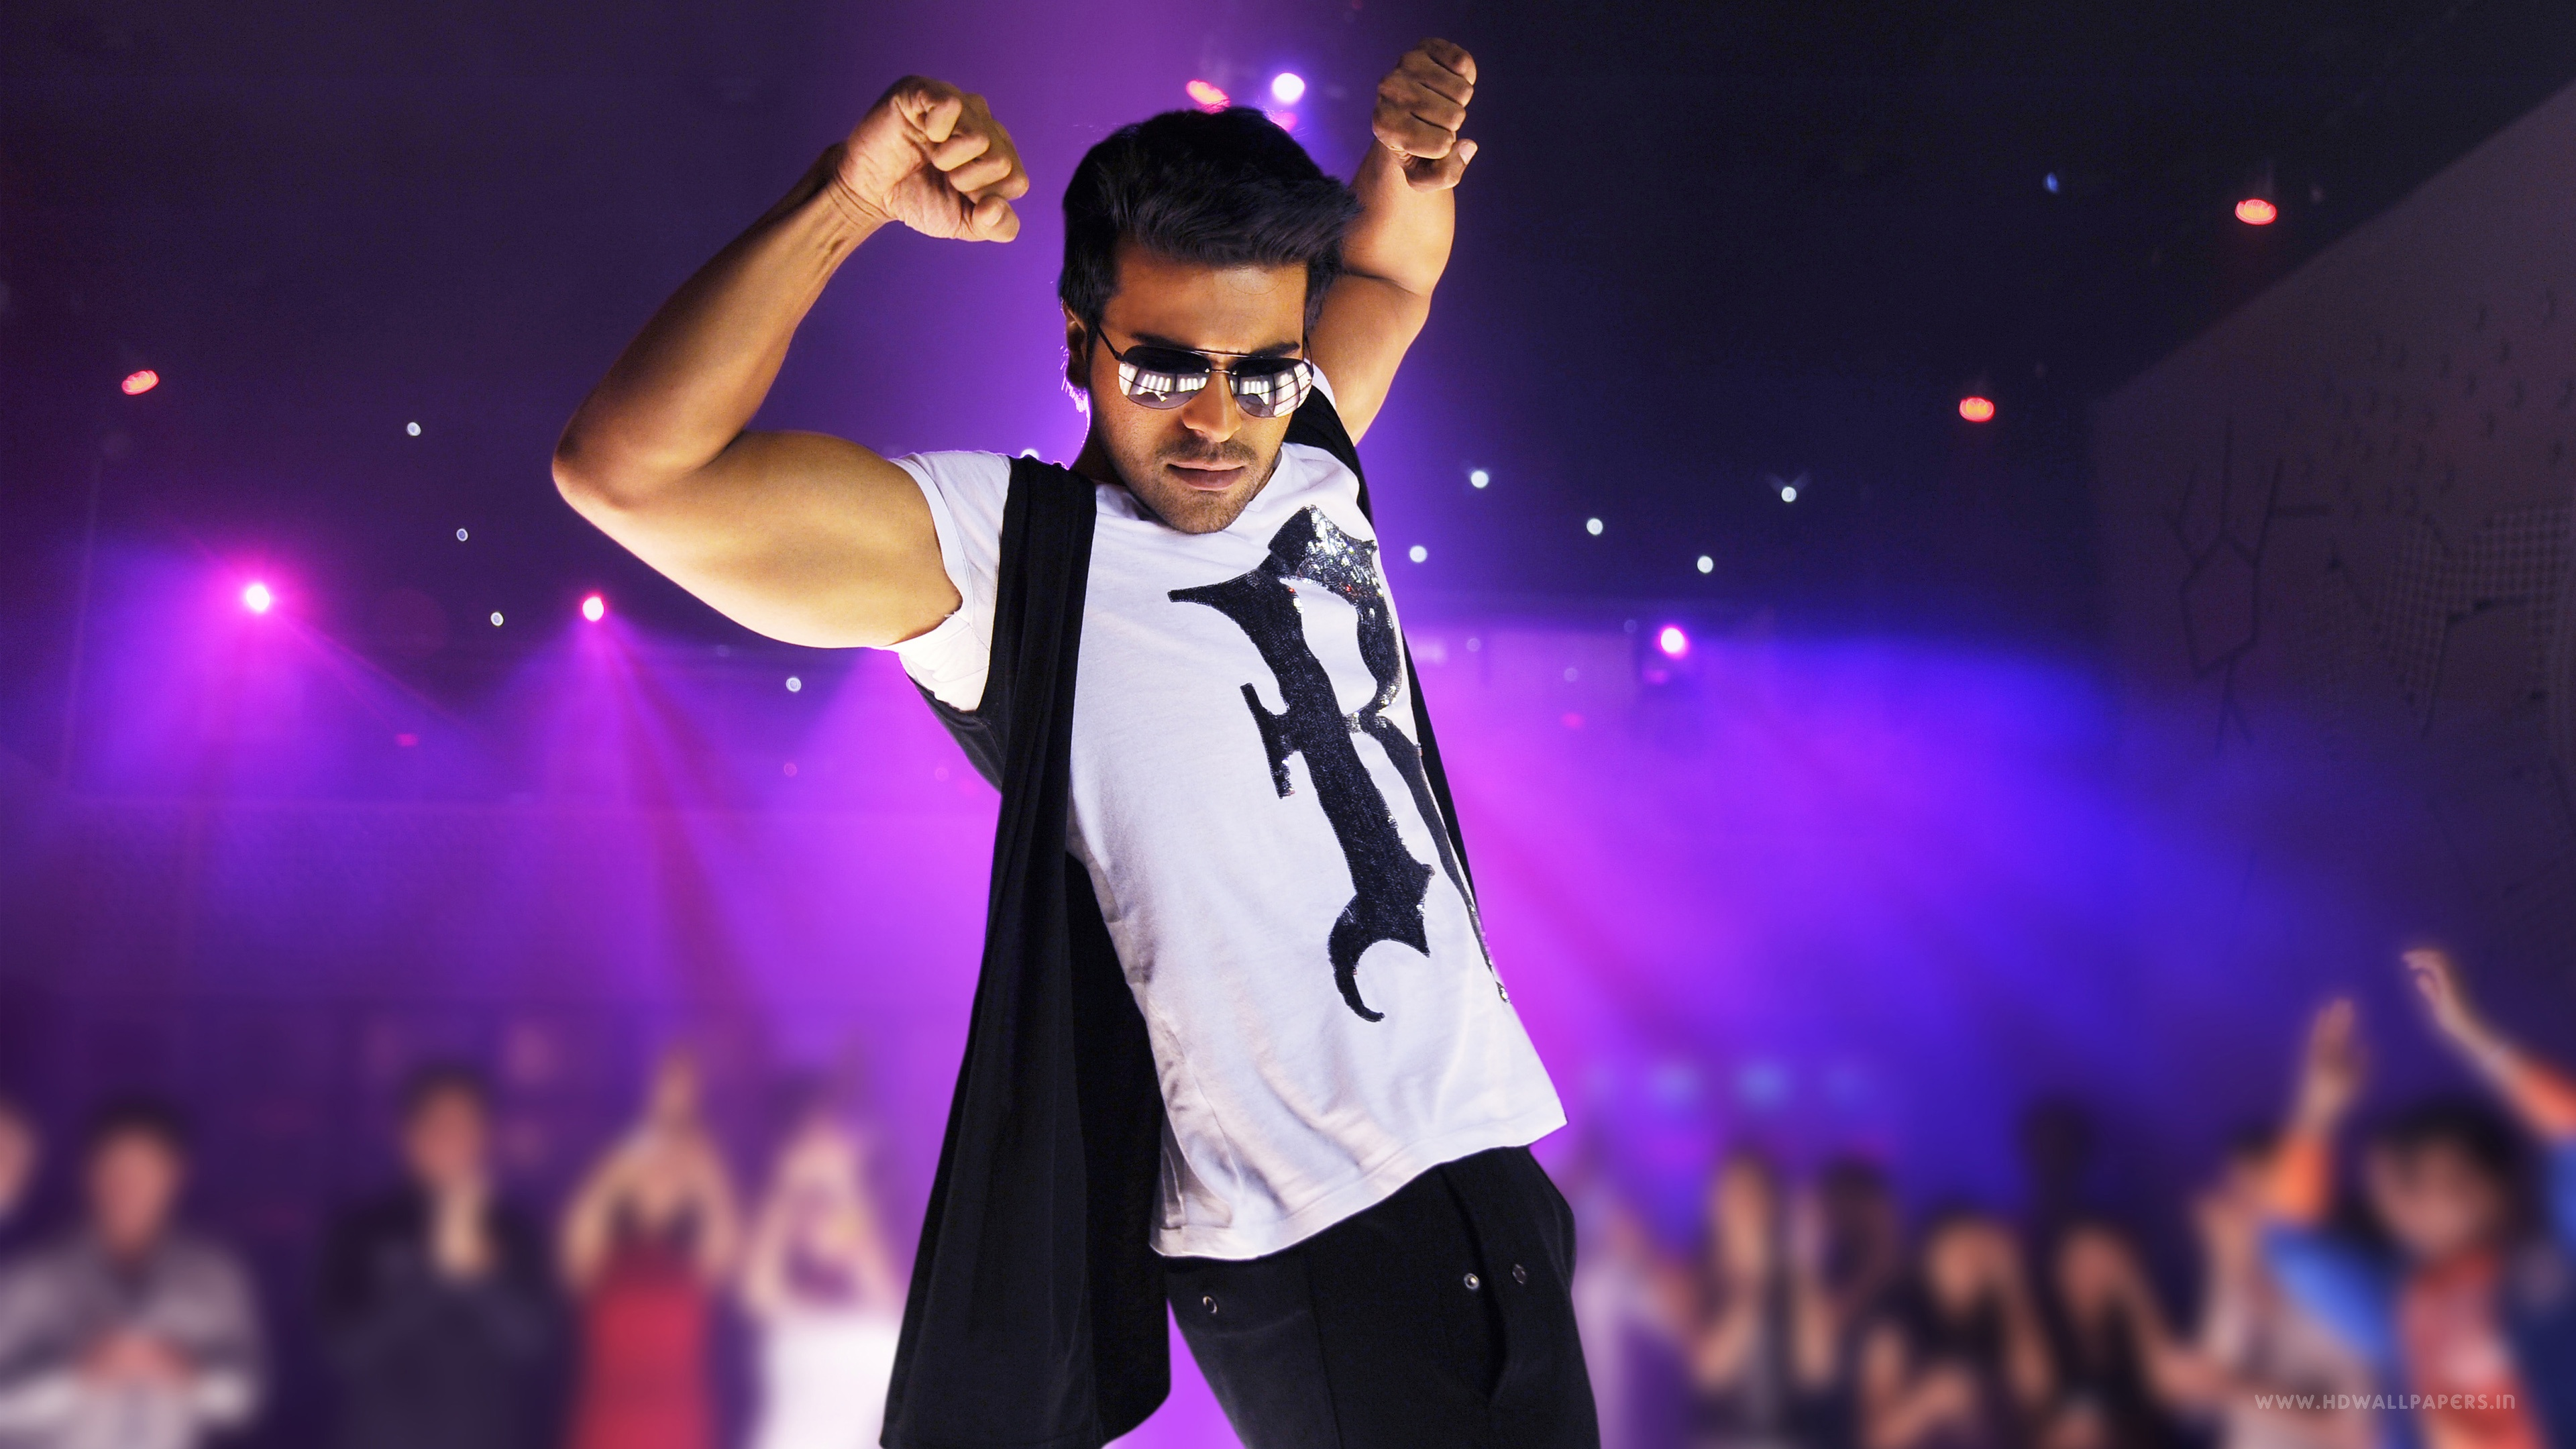 Ram Charan Wallpapers In Jpg Format For Free Download